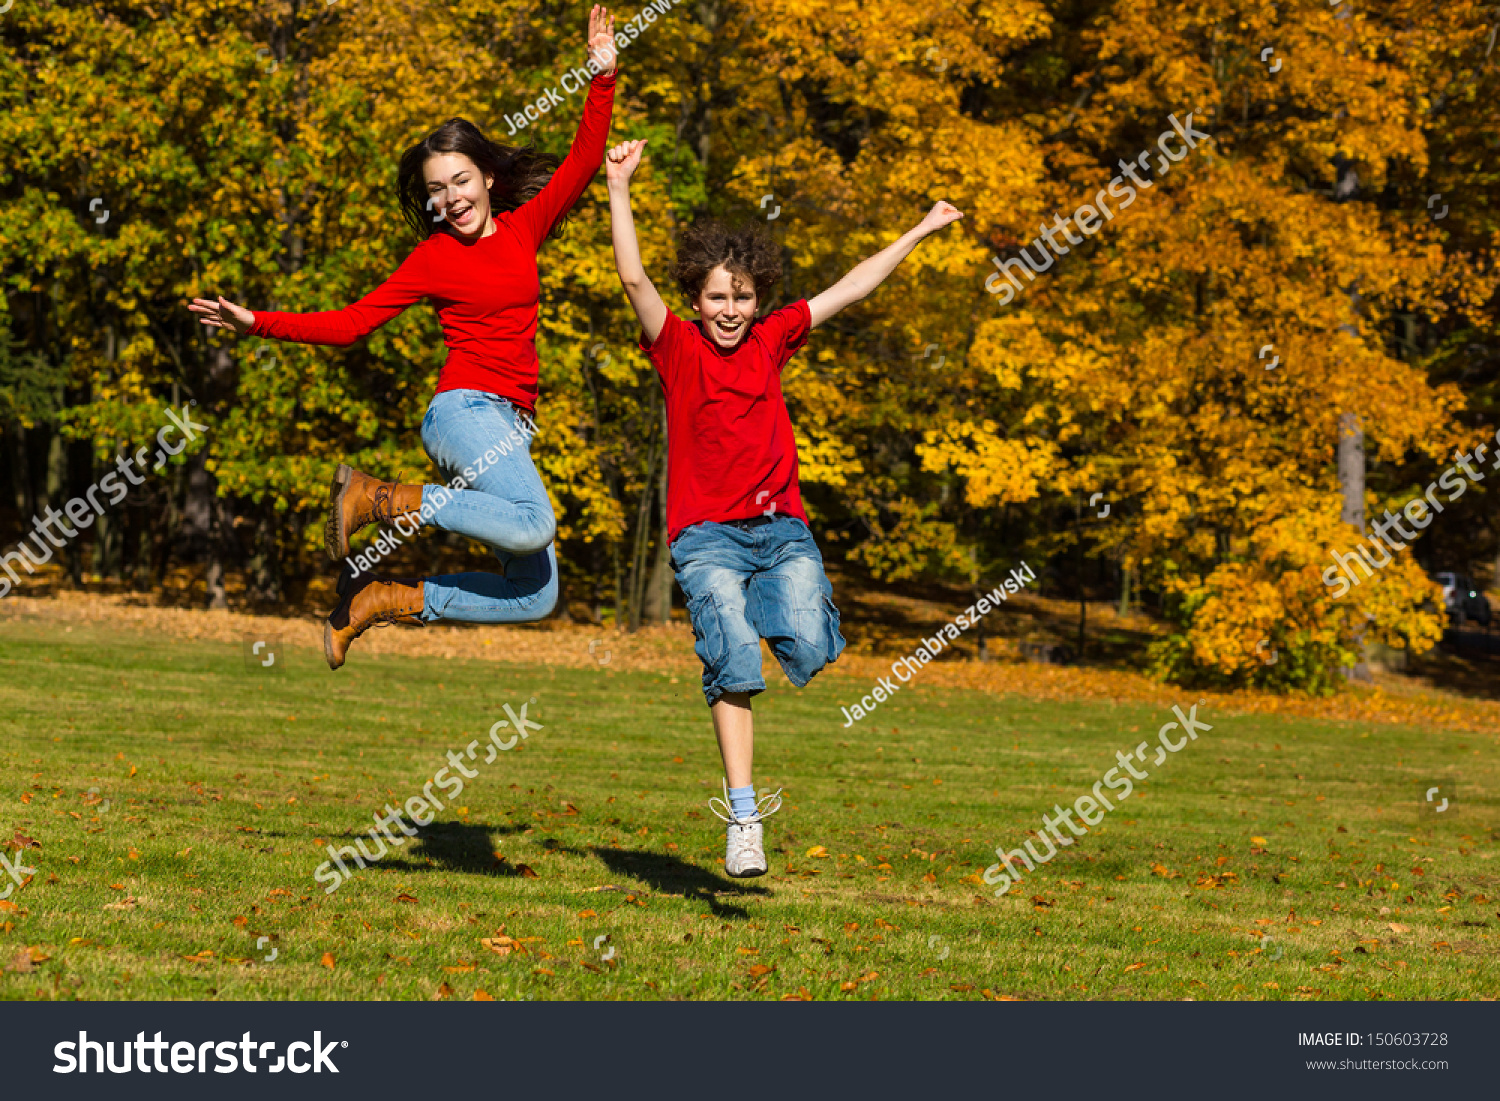 Healthy Lifestyle Girl Boy Running Jumping Stock Photo -2814